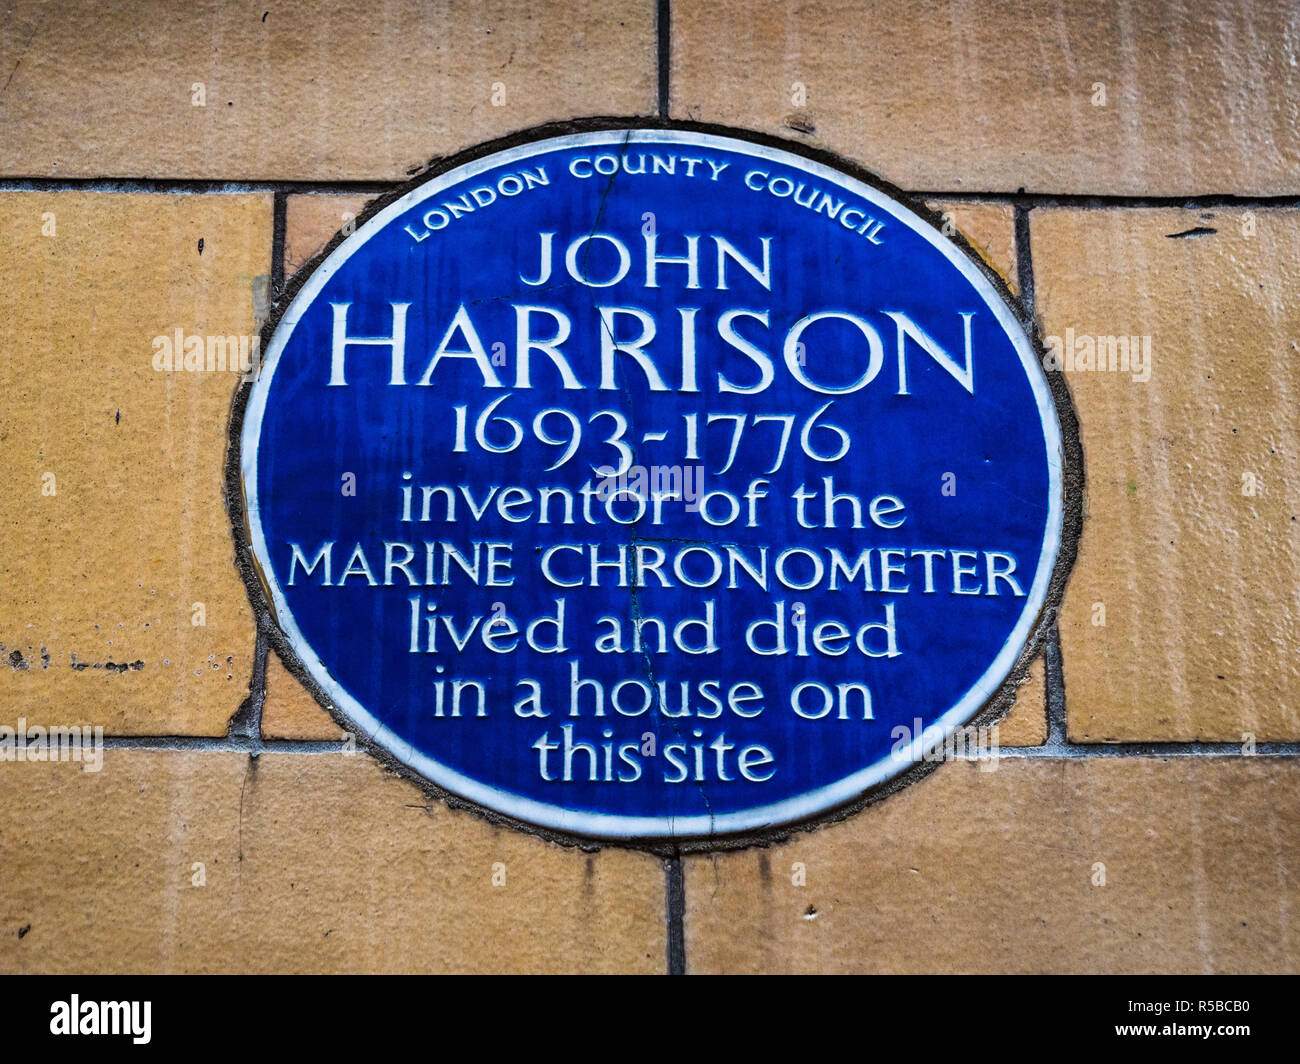 John Harrison Blue Plaque London - John Harrison invented the marine chronometer. Plaque on the house in Summit House, Red Lion Square, Holborn London - Stock Image